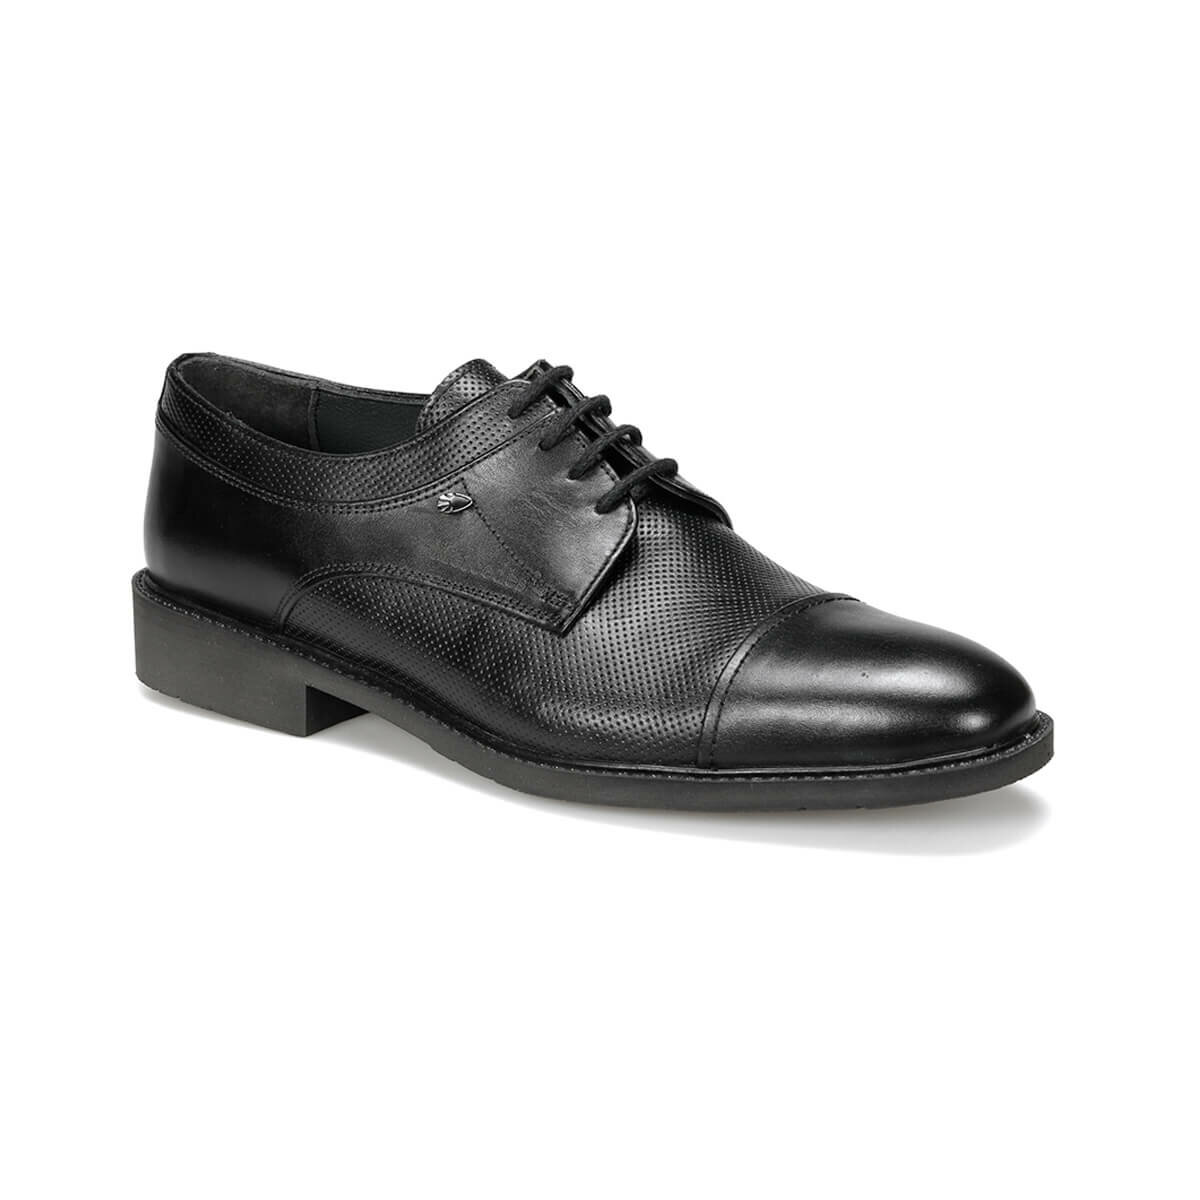 FLO KENTUCKY 9PR Black Men 'S Classic Shoes MERCEDES